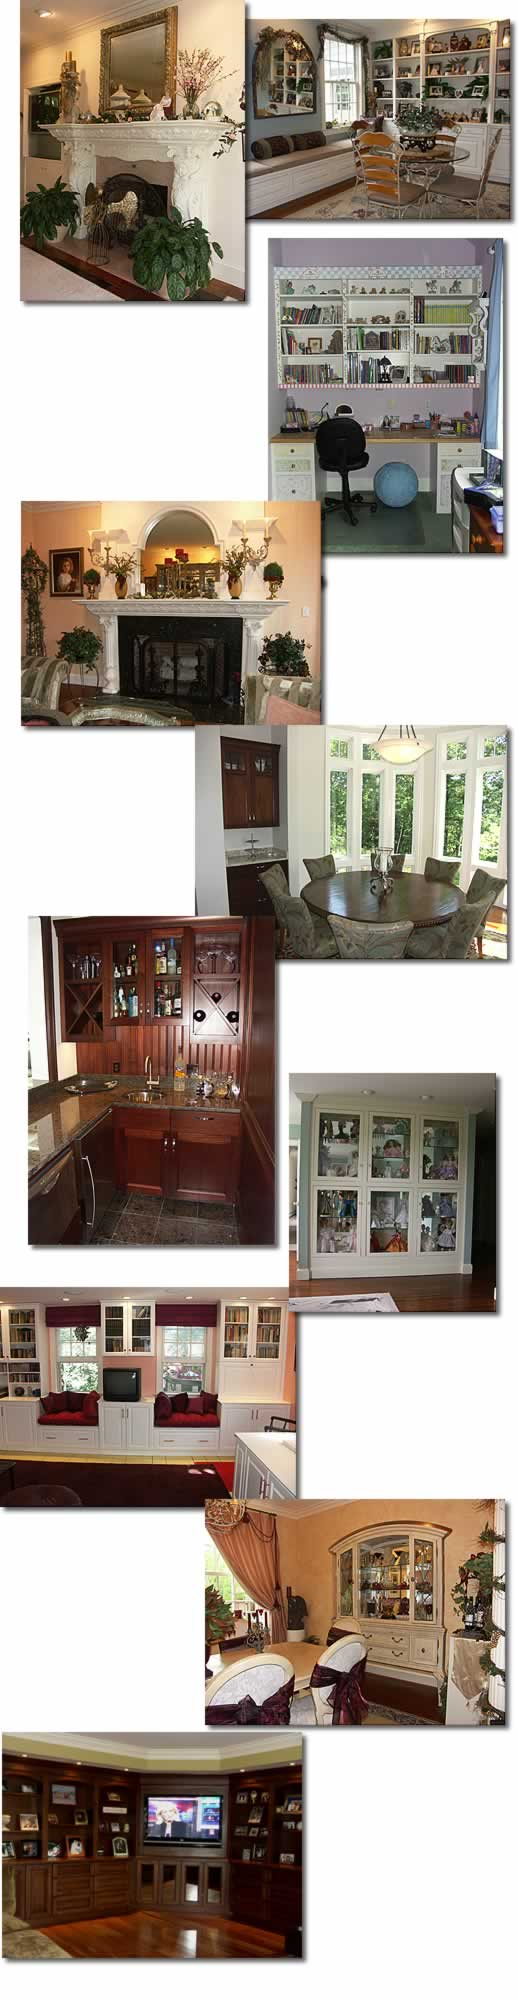 Other rooms and cabinetry